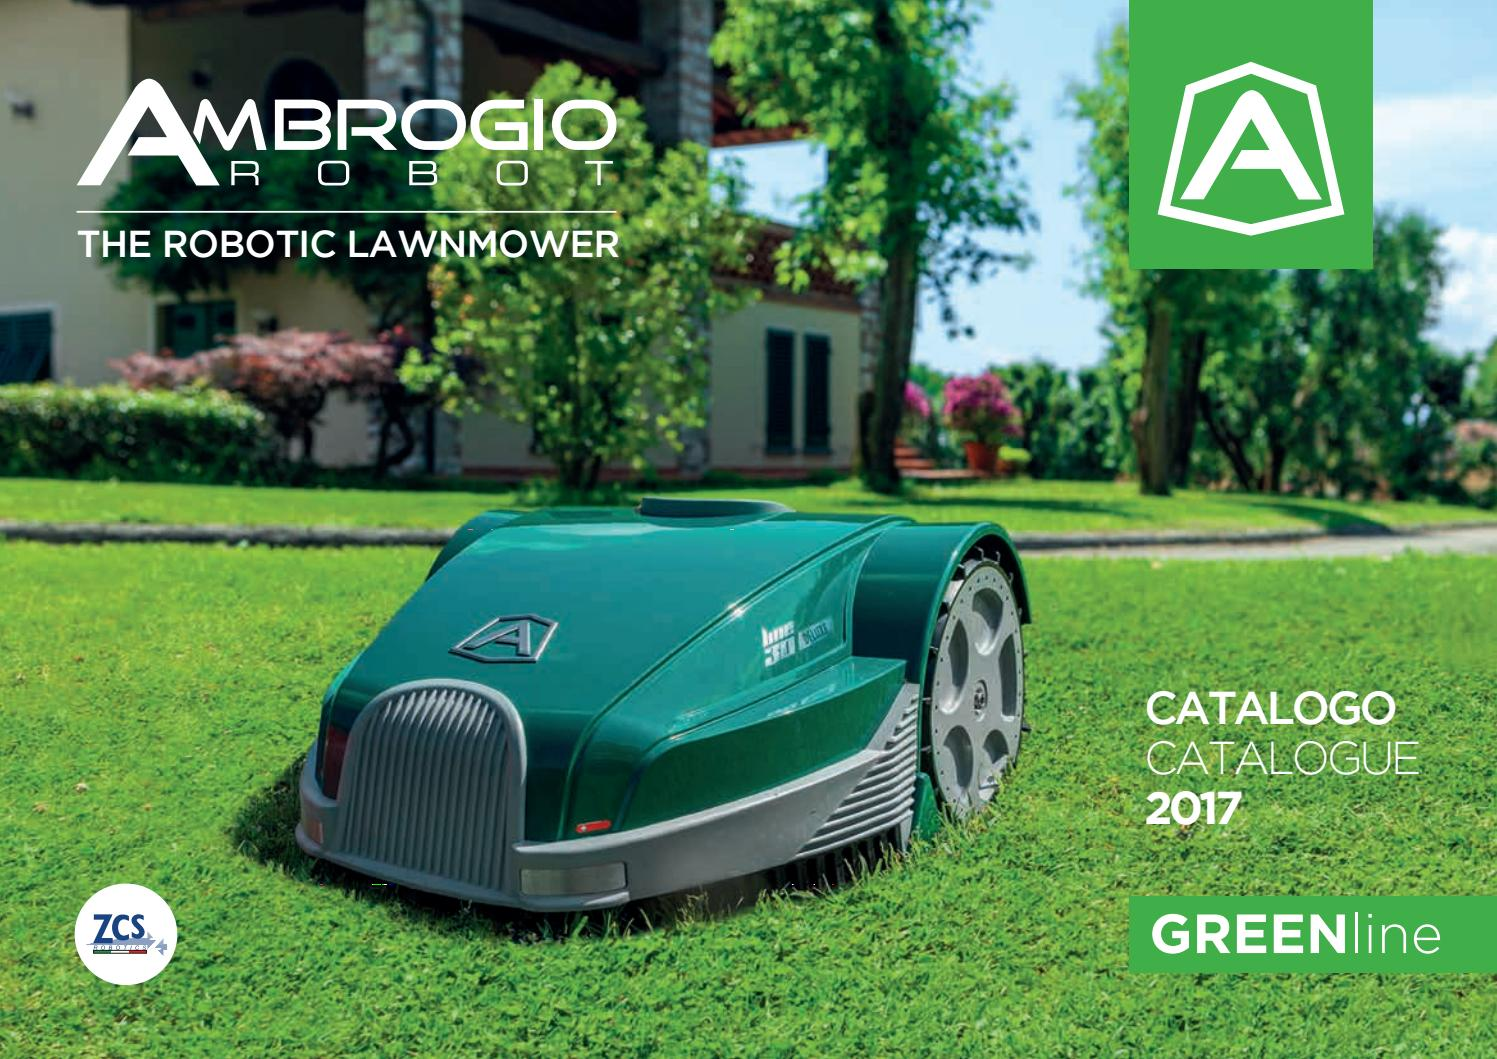 Robot lawn mower - Catalogue Ambrose Greenline